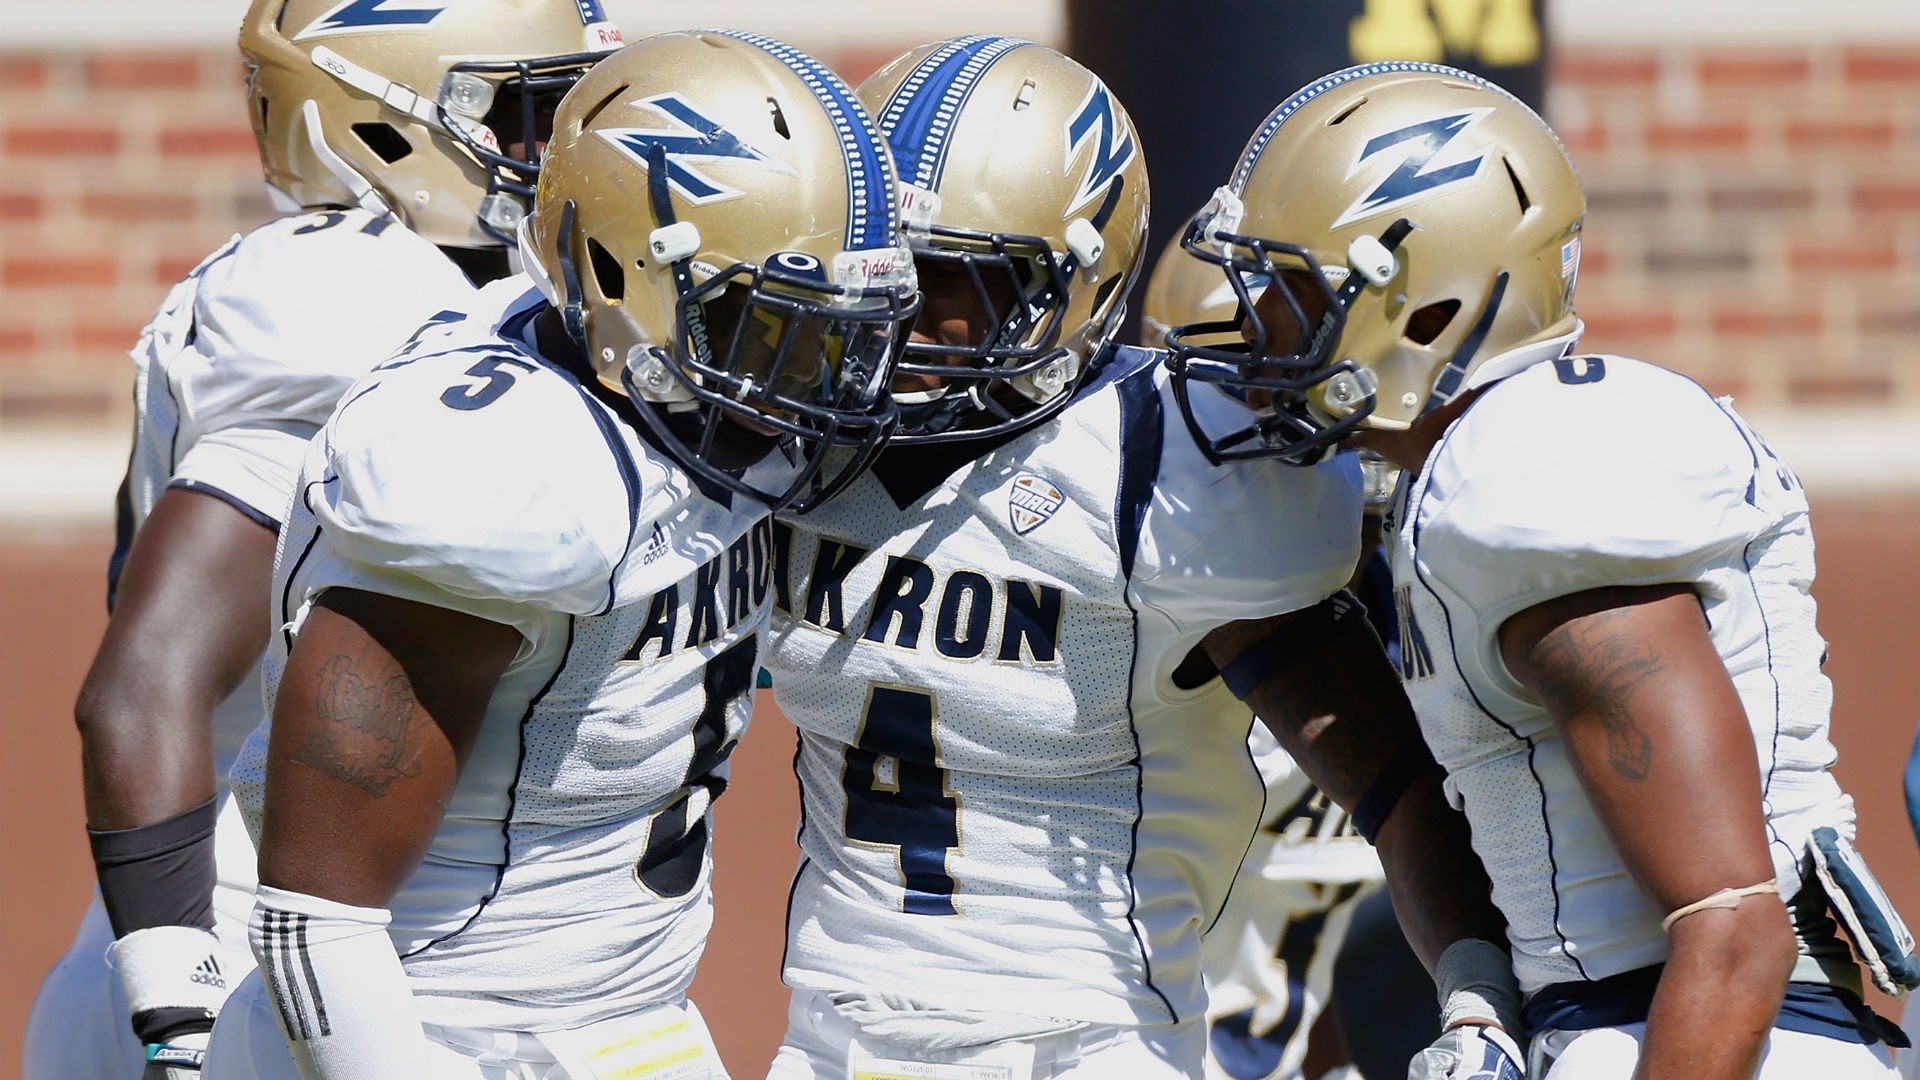 Akron vs. Kent State betting preview and pick - Zips shoot for sixth win, .500 record